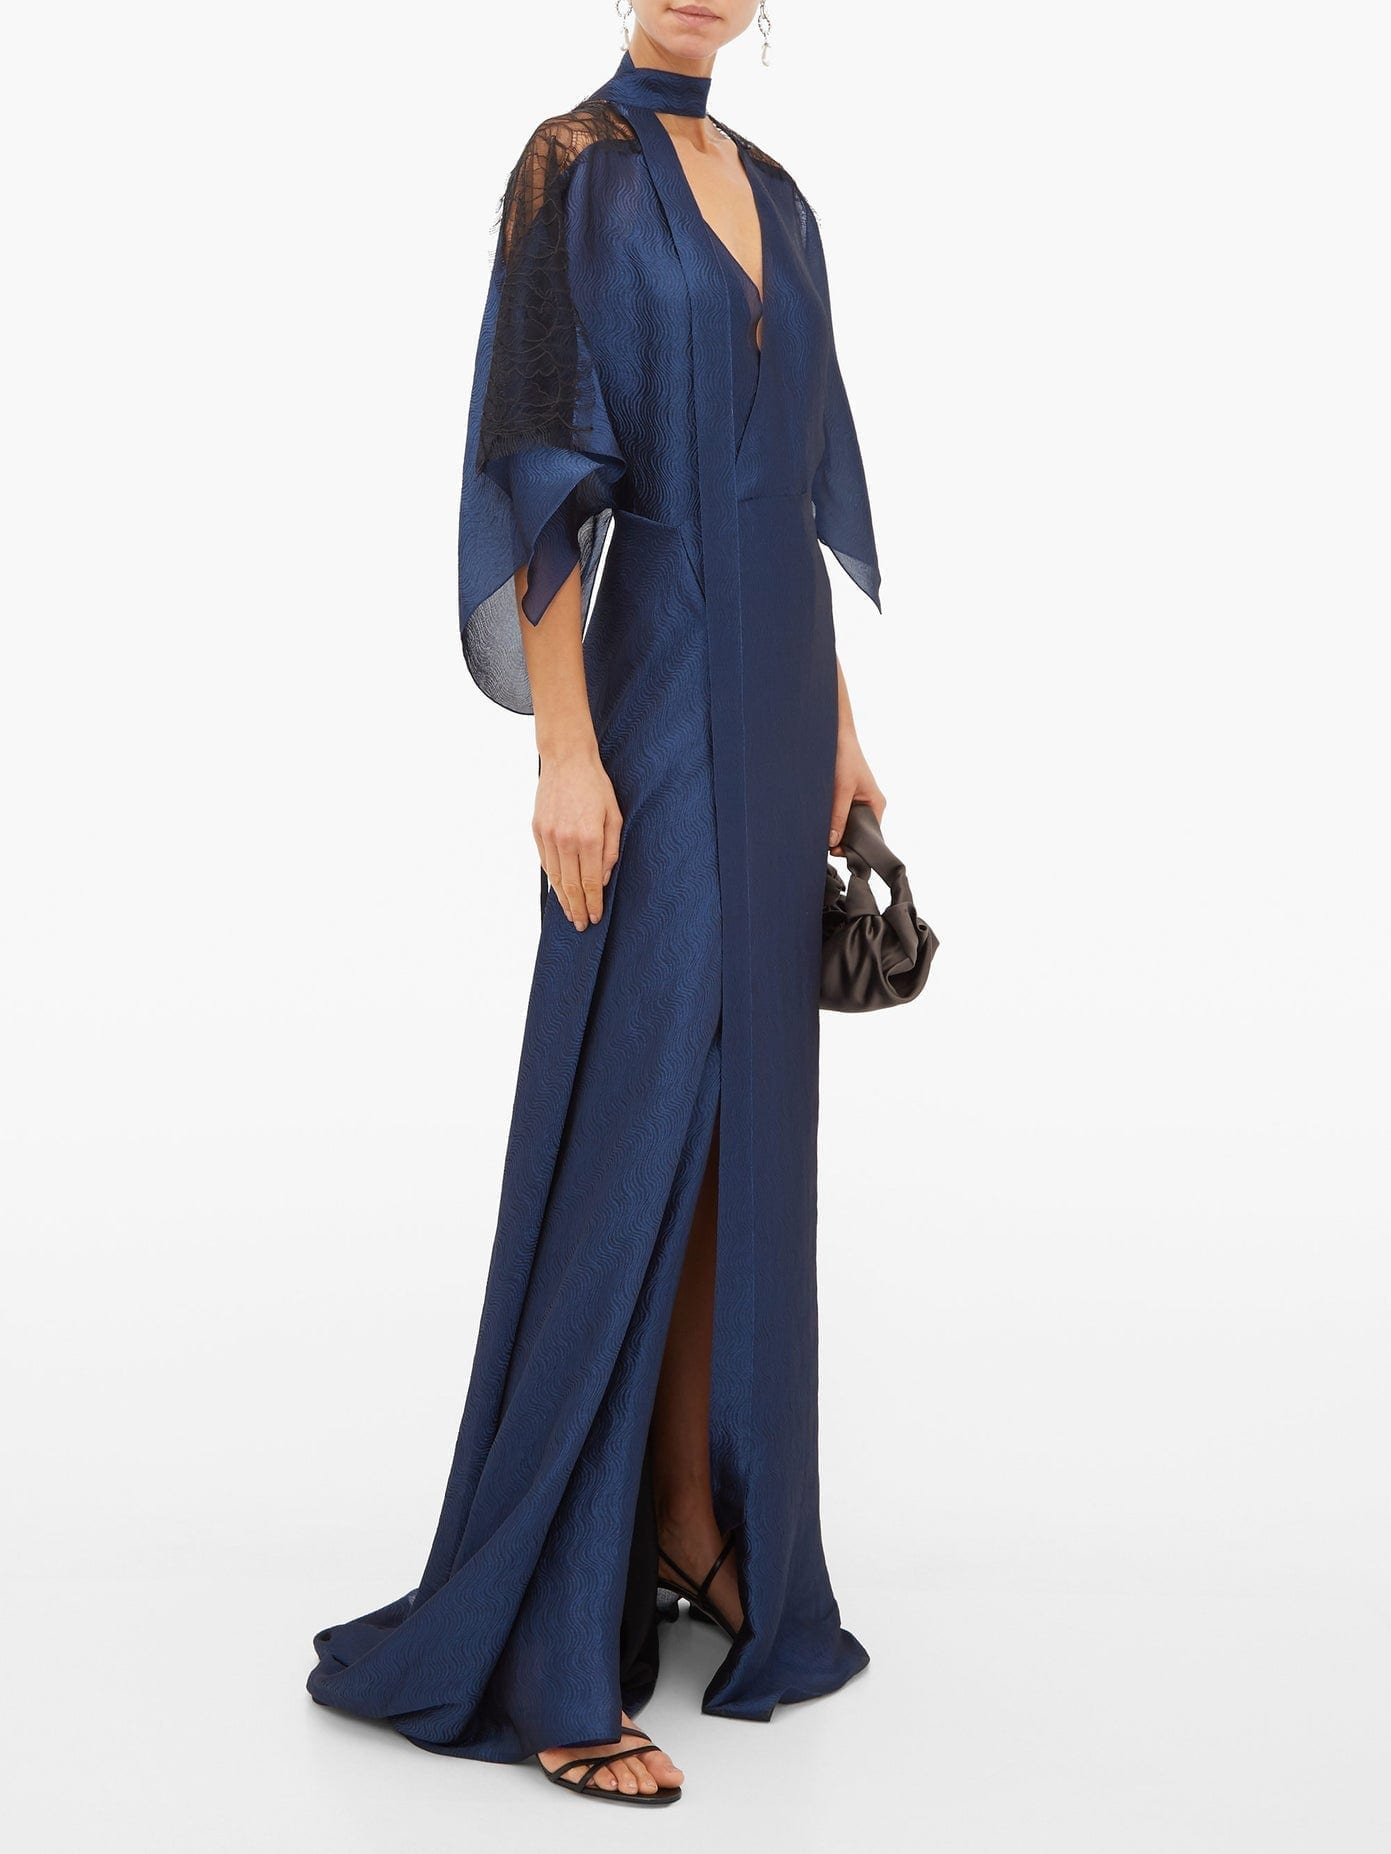 ROLAND MOURET Weston Draped Chiffon Gown